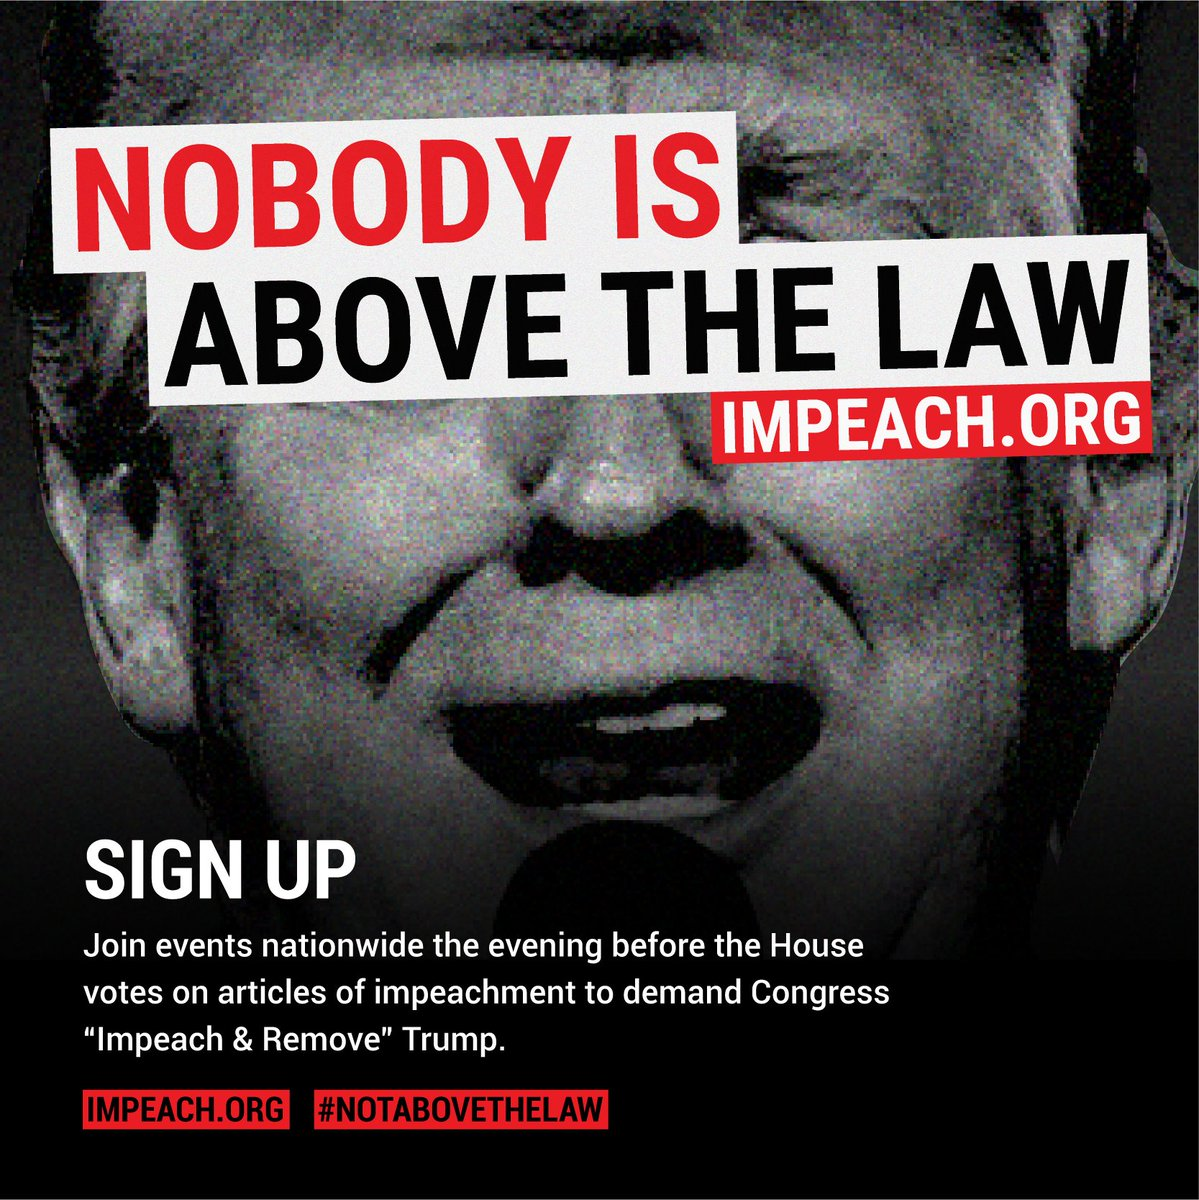 Where will you be the night before the House votes on Articles of Impeachment against Donald J. Trump? There are 250 demonstrations planned around the country- sign up to join or host one! Demand #ImpeachAndRemove now!